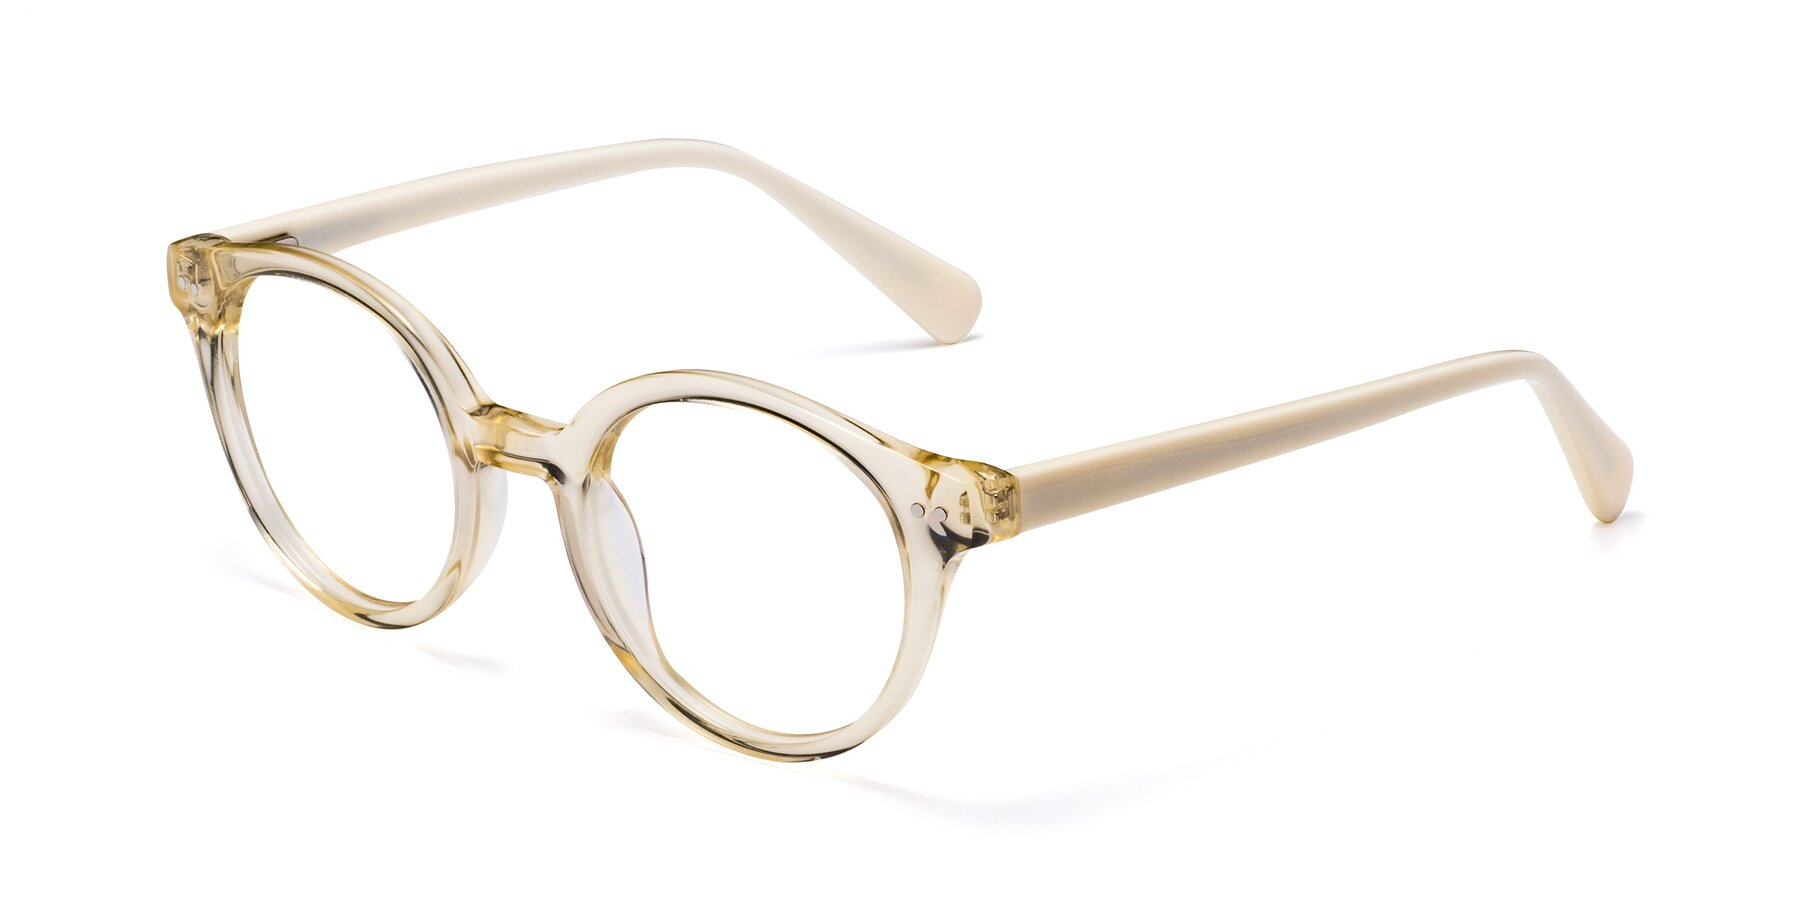 Angle of 17277 in Transparent Beige with Clear Blue Light Blocking Lenses